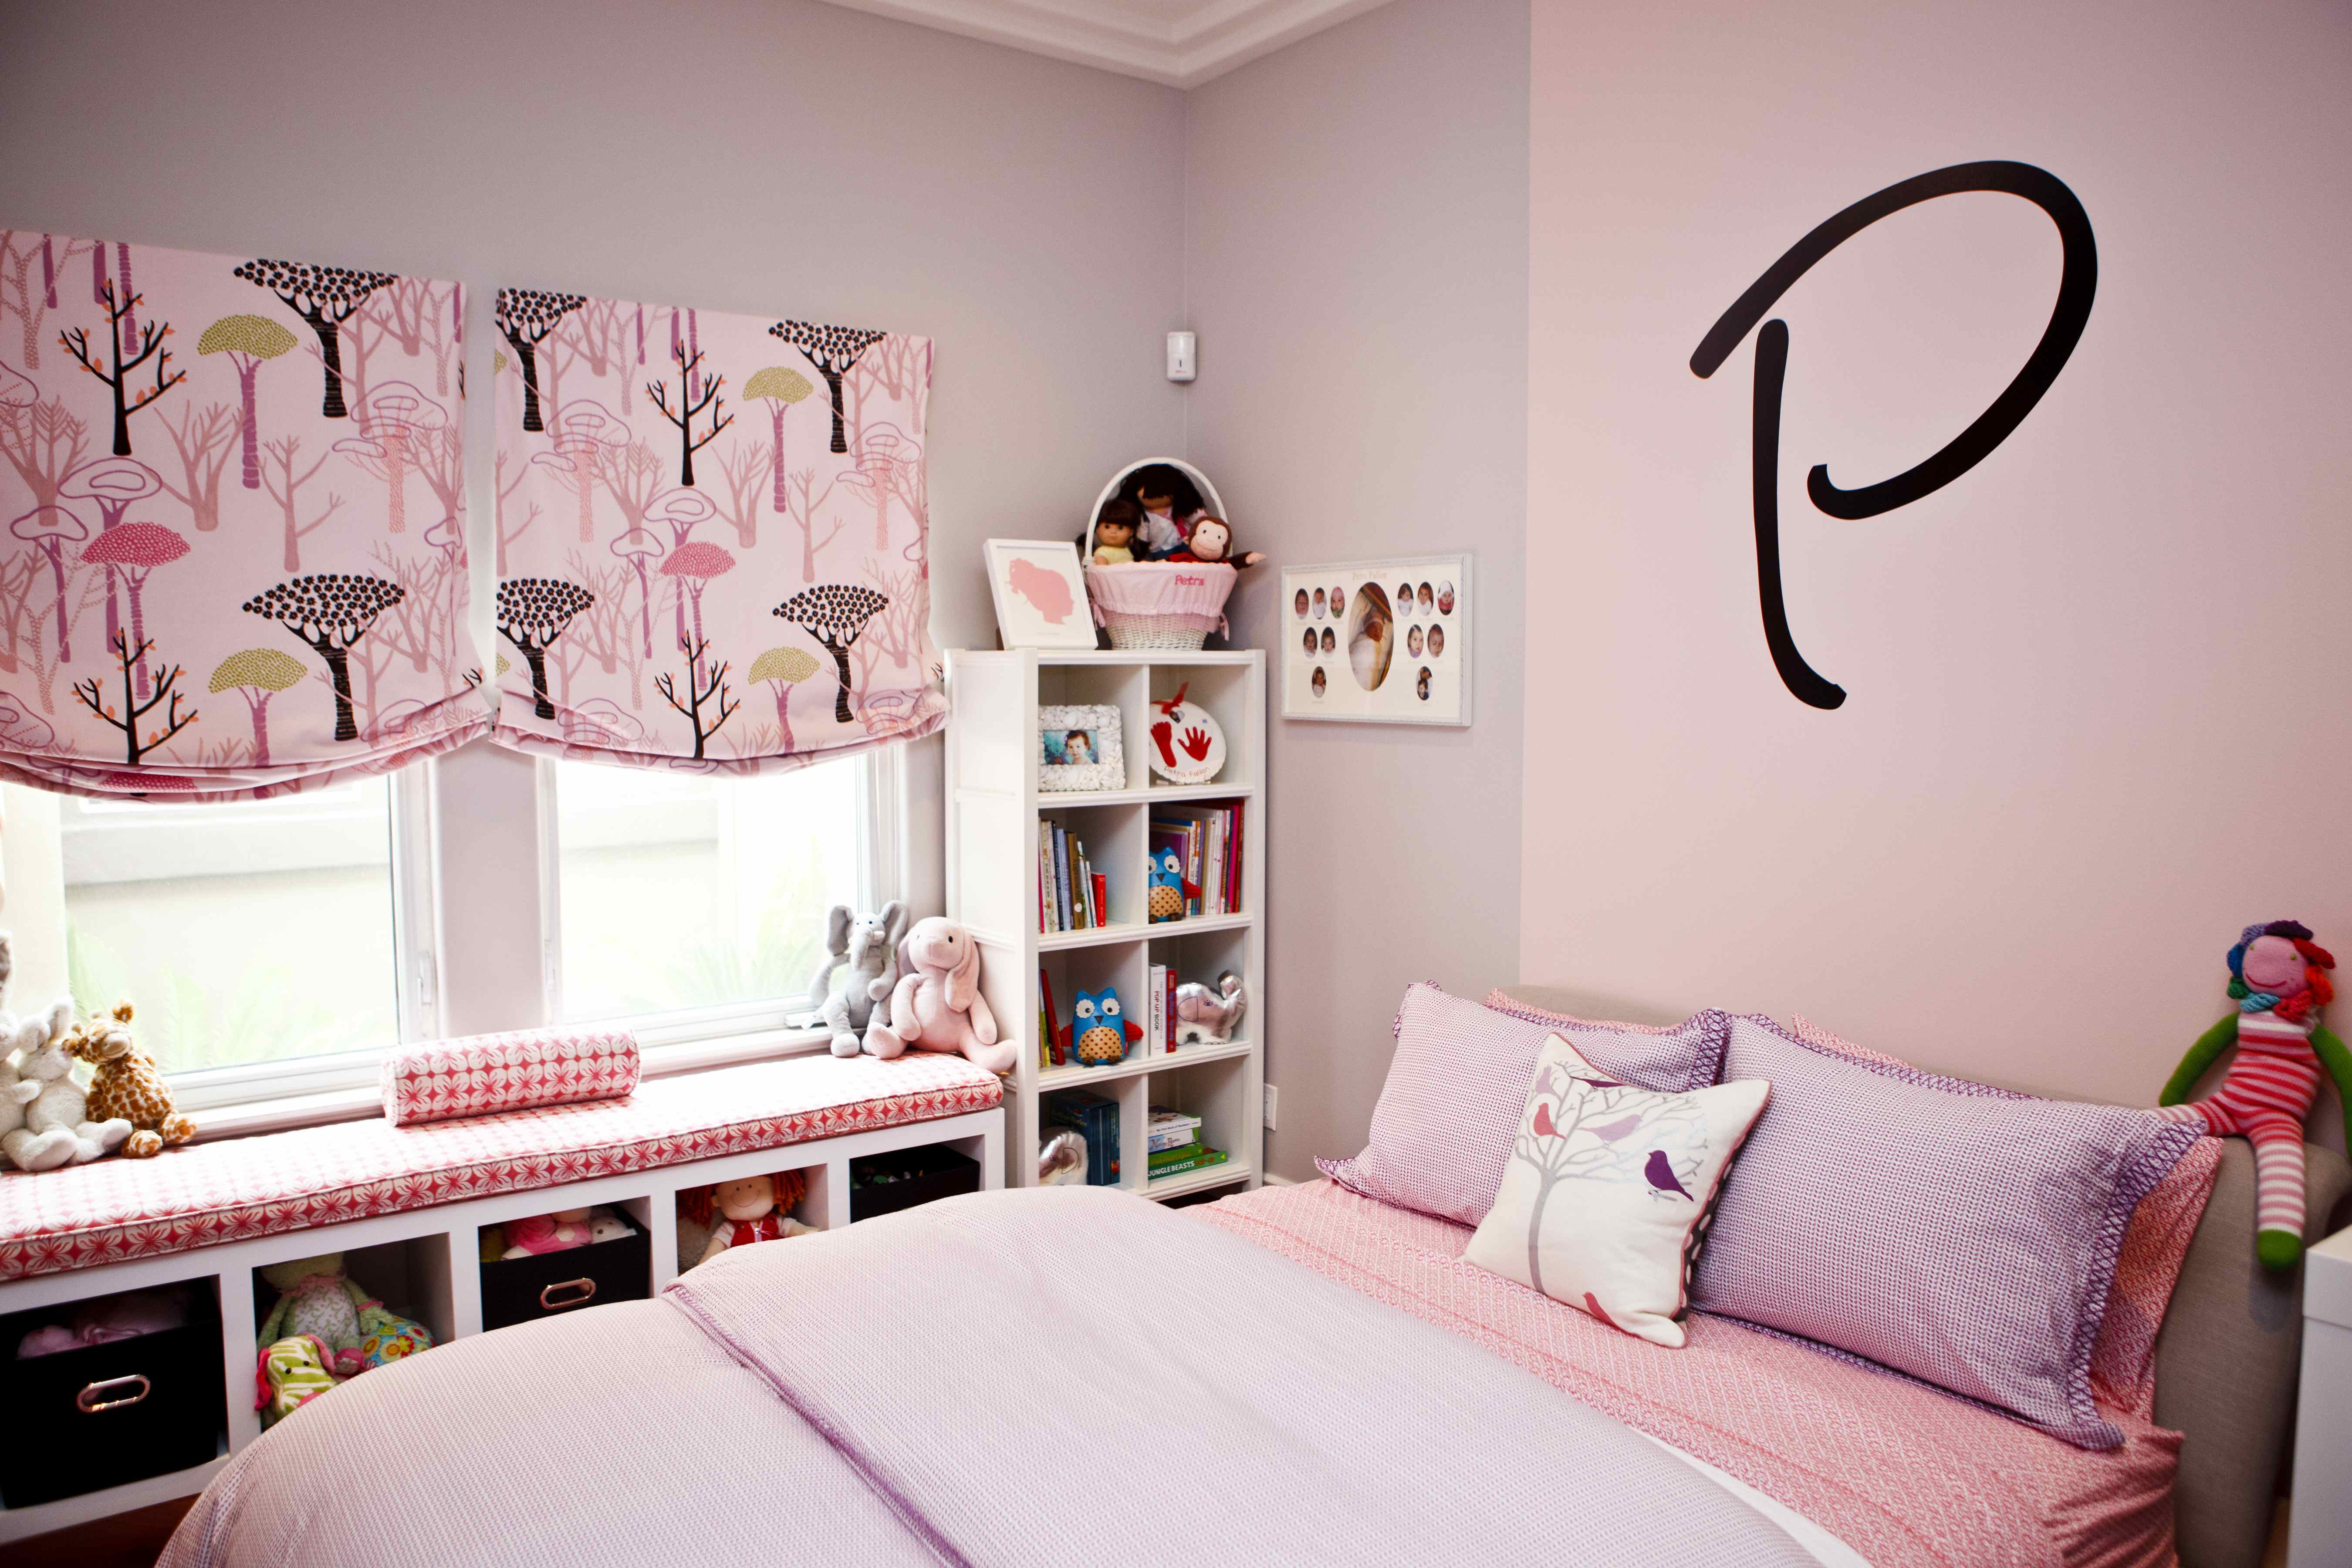 Design Reveal A Modern Toddler Room within 13 Some of the Coolest Concepts of How to Upgrade Modern Toddler Bedroom Ideas